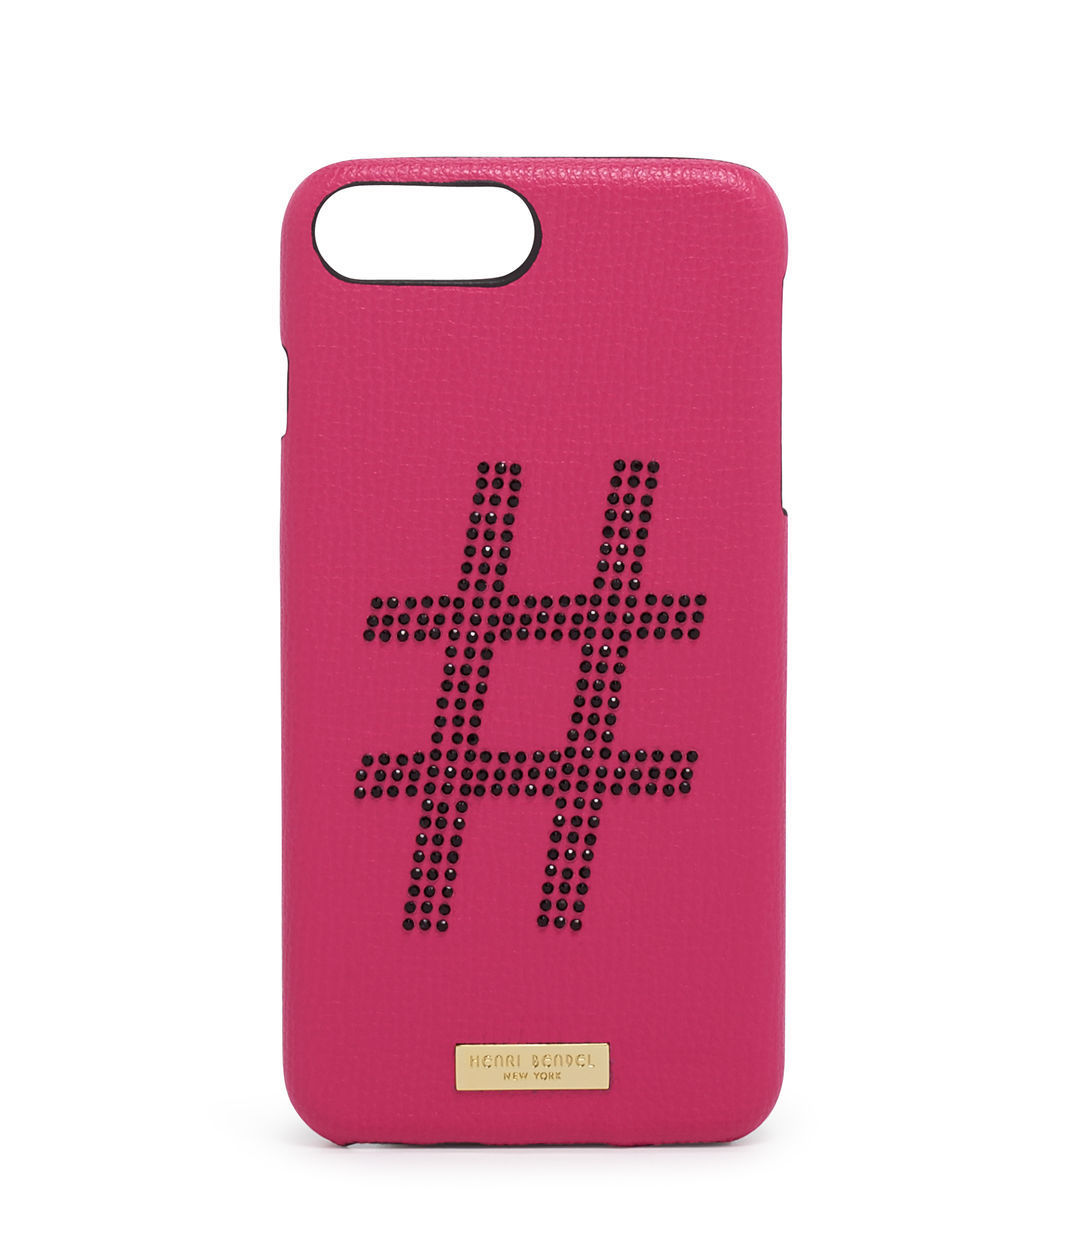 【HENRI BENDEL】●日本未入荷●W57TH CASE FOR IPHONE 7/8 PLUS